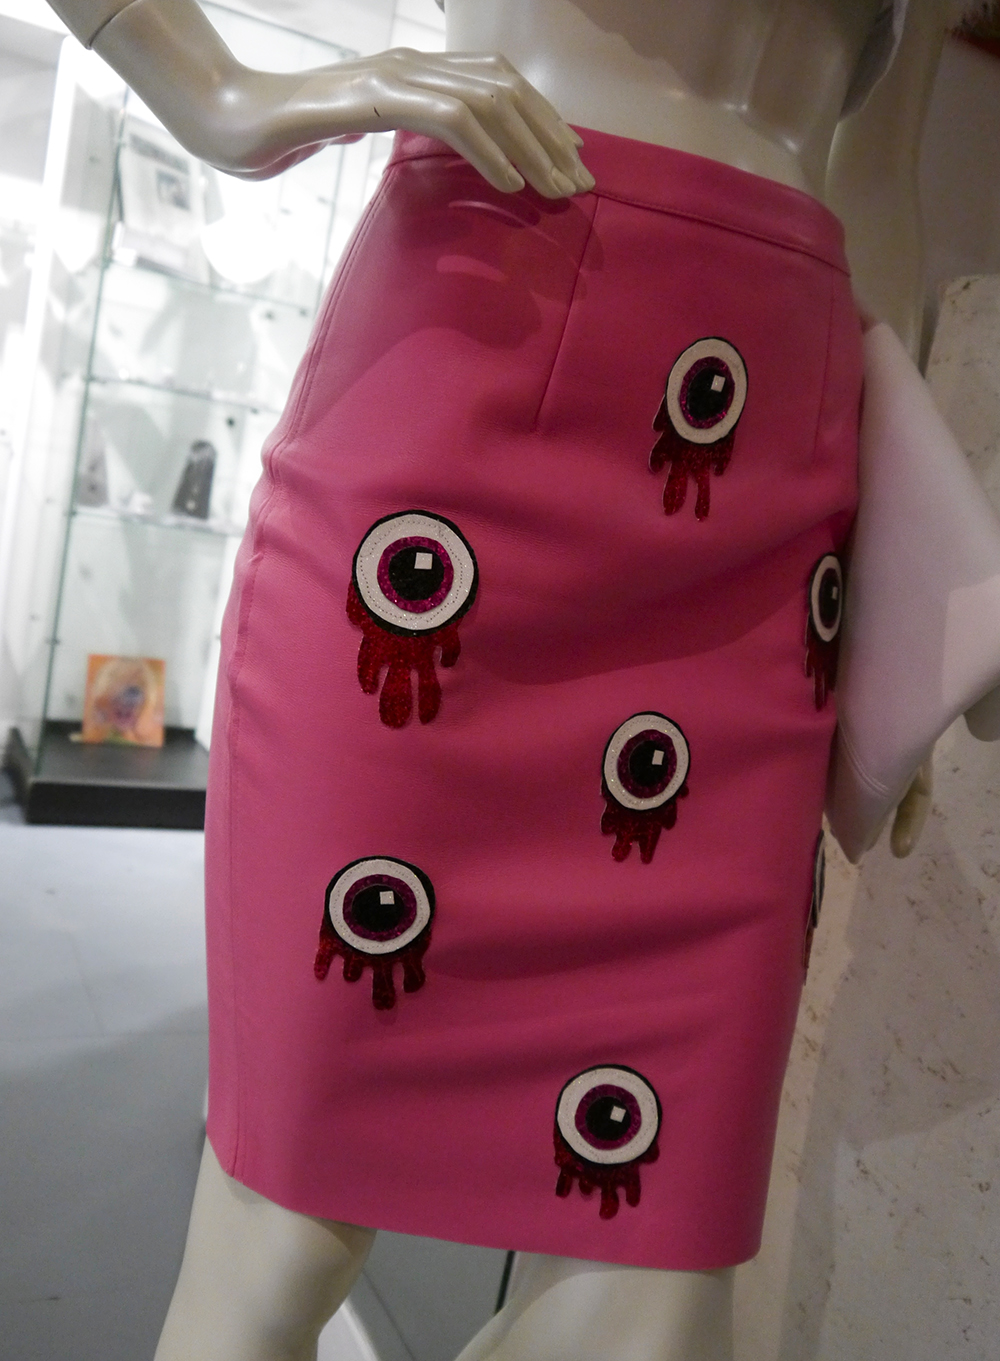 The Scottish Design Exchange, Edinburgh shopping, alternative shopping in Edinburgh, Ocean Terminal, fashion, Scottish fashion blogger, Never Monday, eyeball skirt